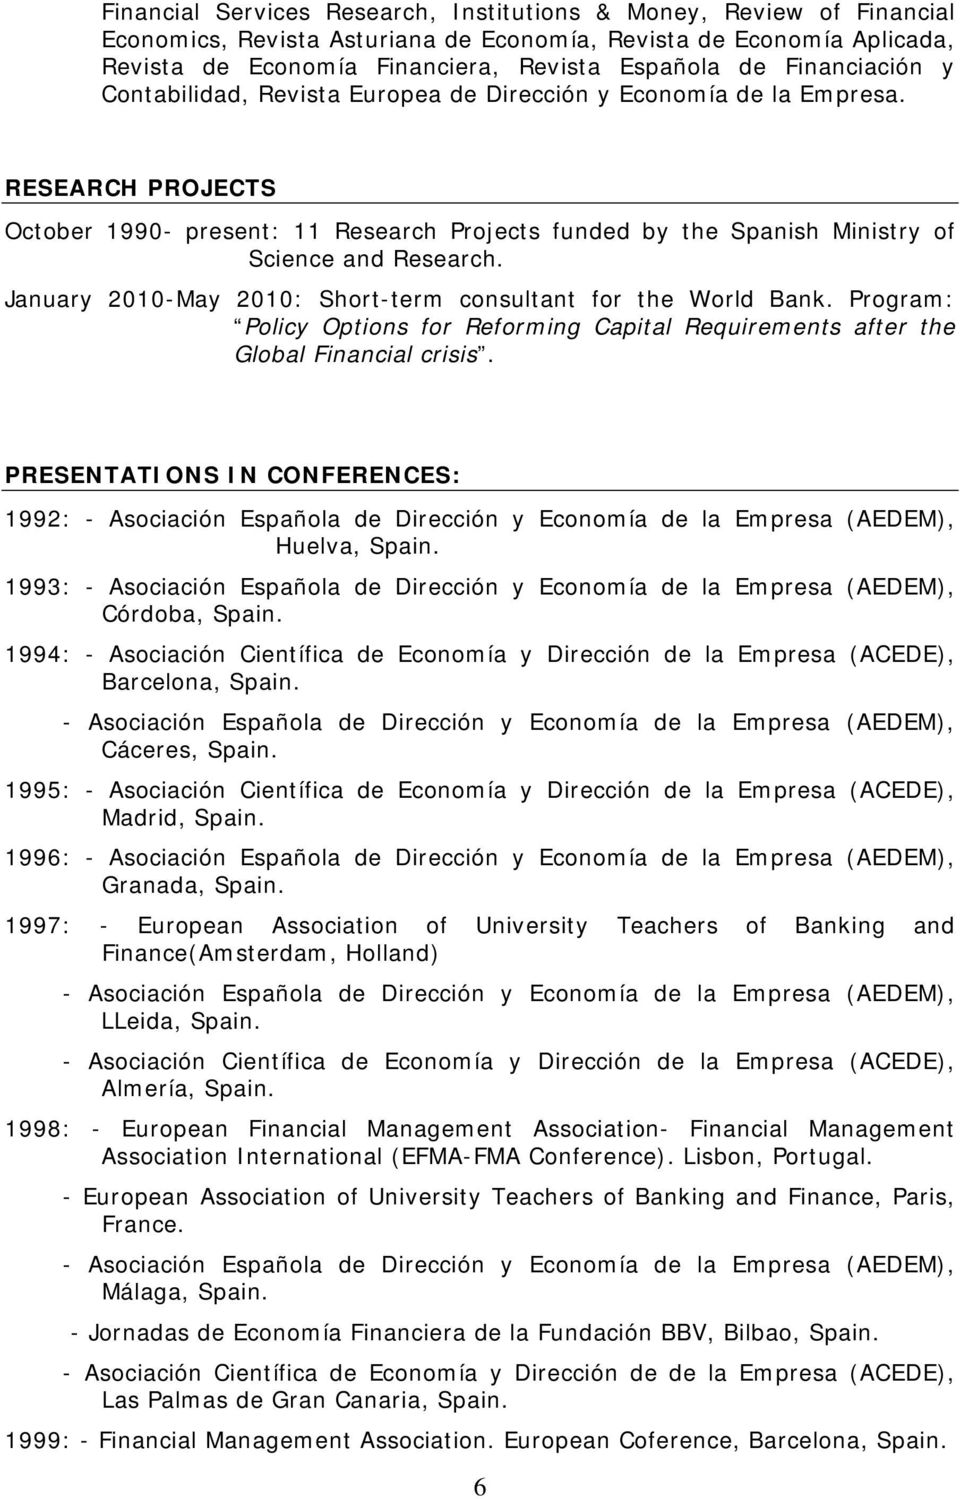 RESEARCH PROJECTS October 1990- present: 11 Research Projects funded by the Spanish Ministry of Science and Research. January 2010-May 2010: Short-term consultant for the World Bank.